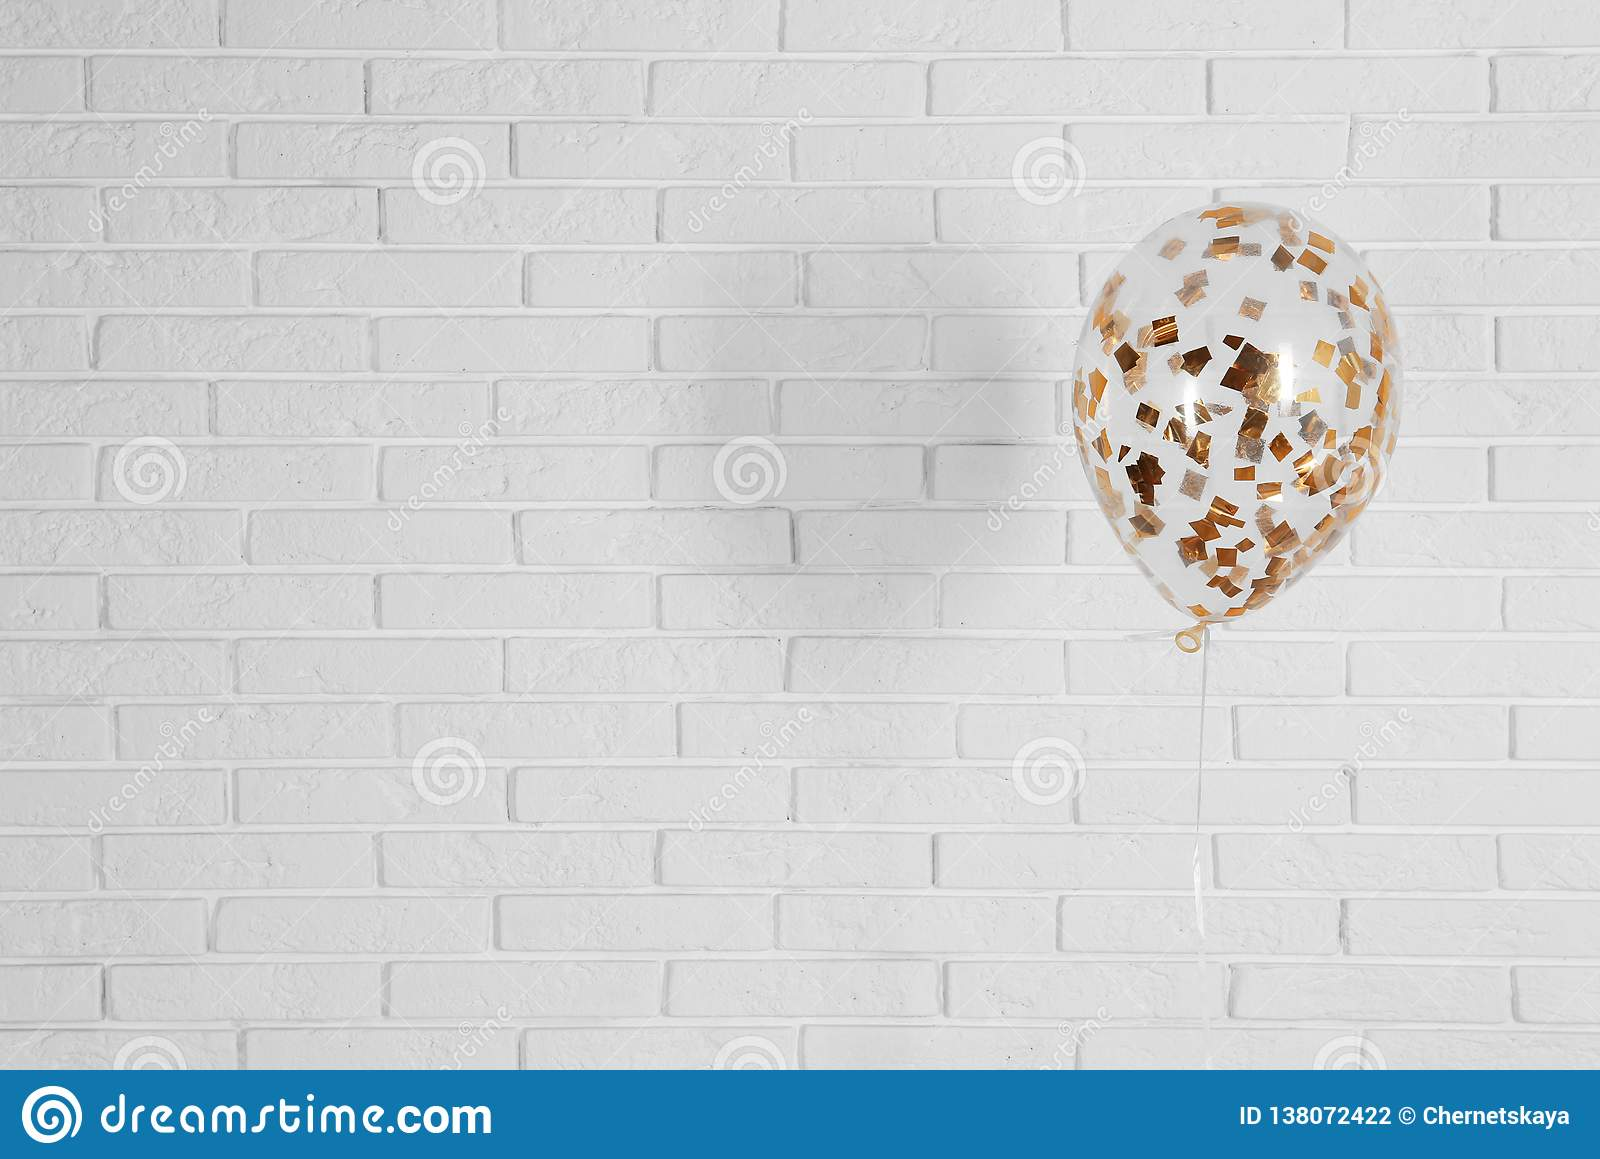 Bright balloon near brick wall, space for text.